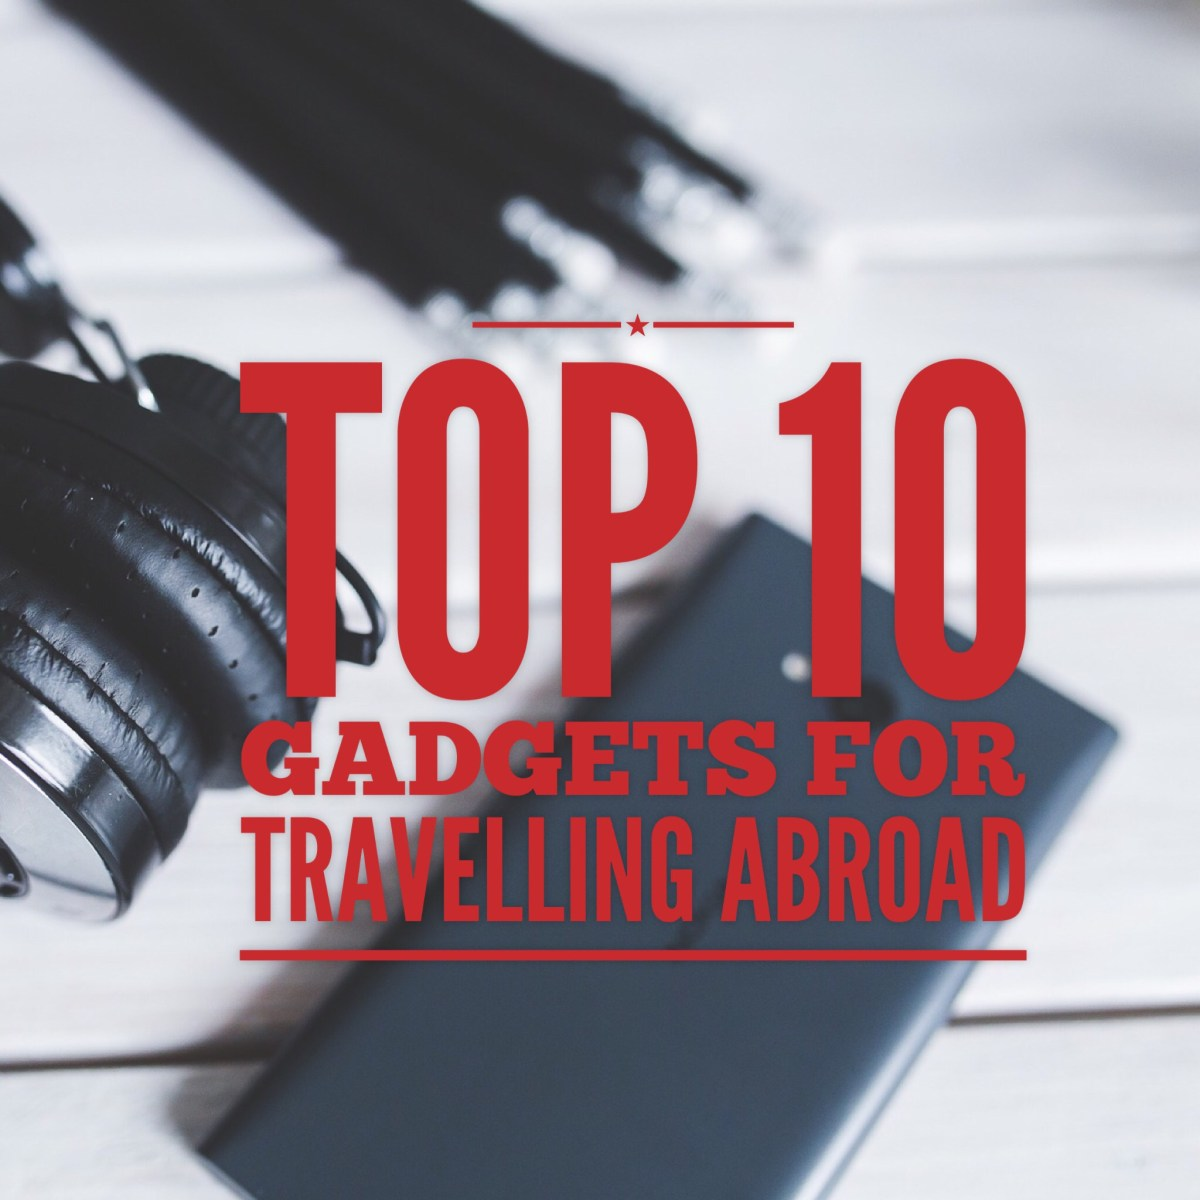 gadgets for travelling abroad